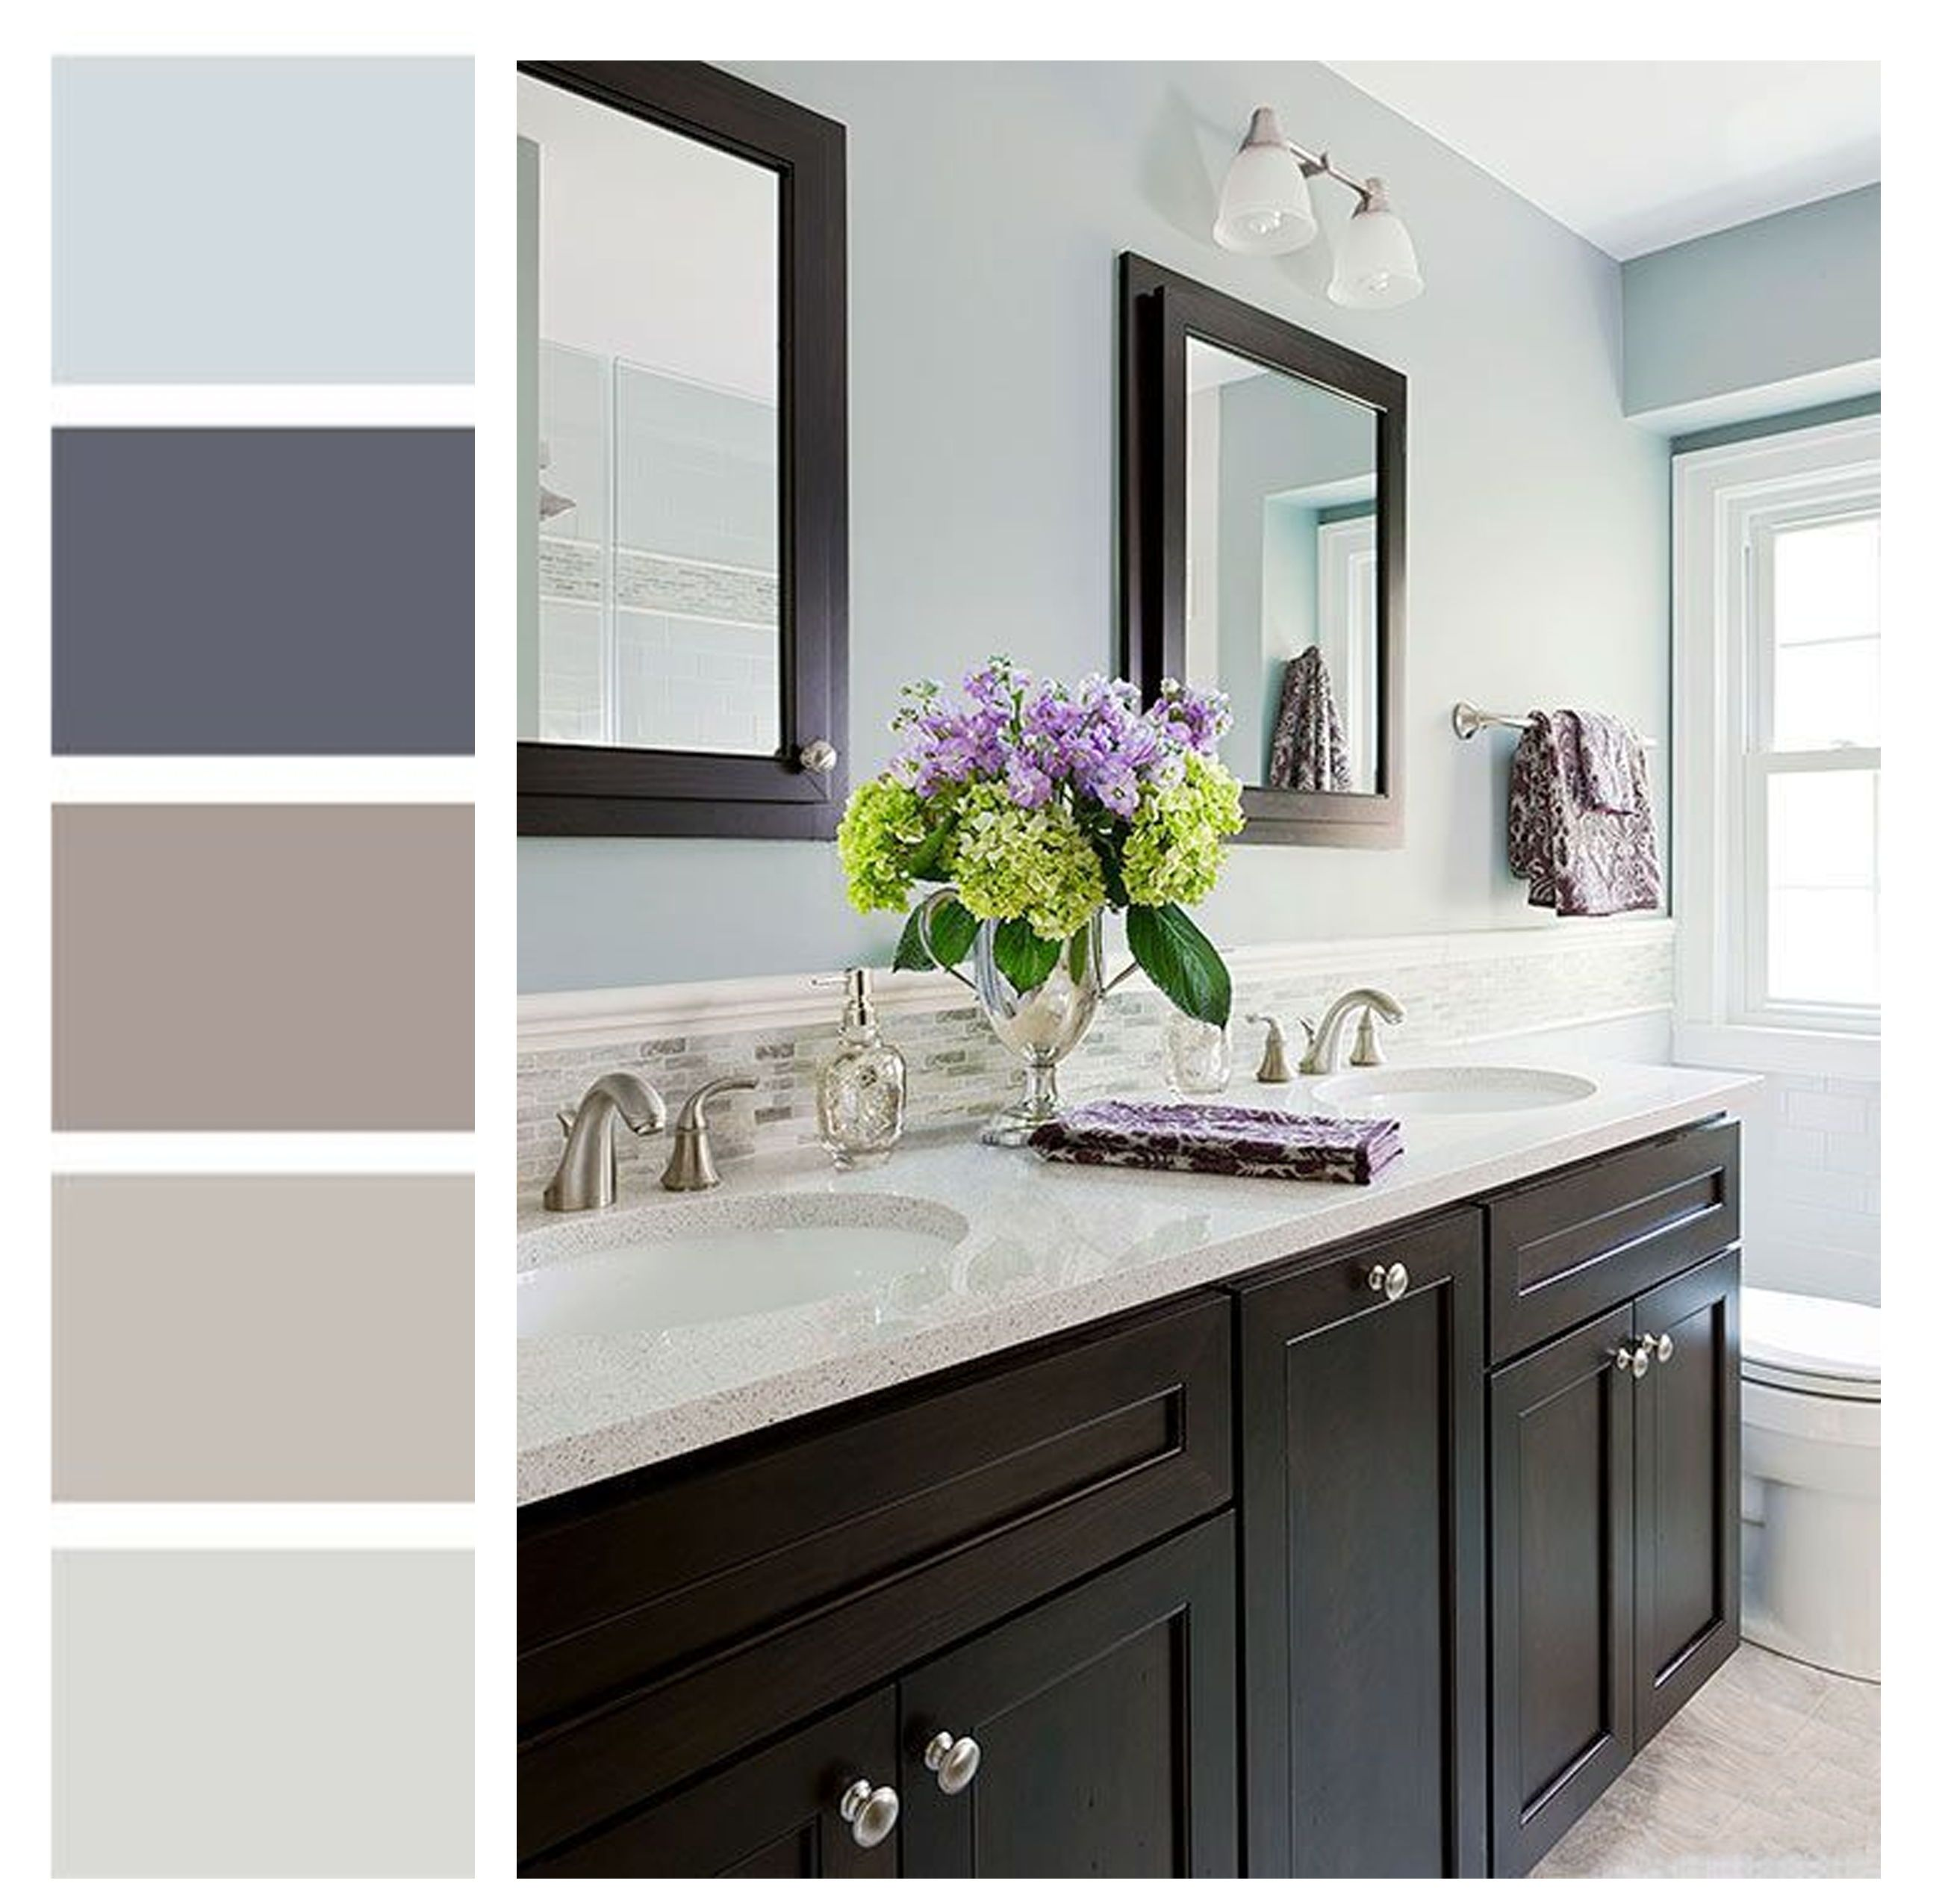 paint color selection in 2020 paint colors coordinating on interior designer recommended paint colors id=93932